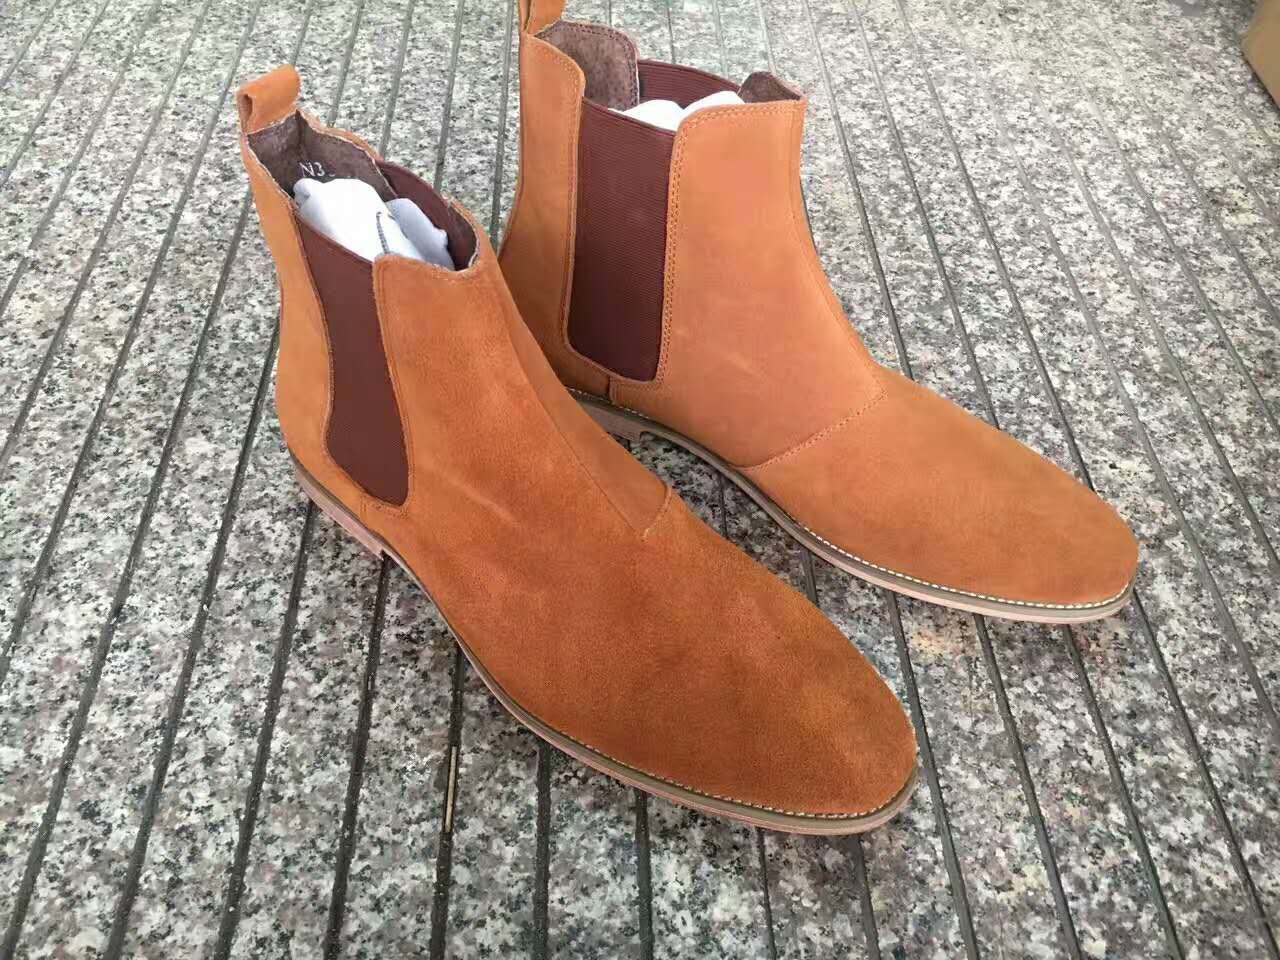 a4d6e61a73c Buy 2017 chelsea boots kanye west fashion style genuine suede ...